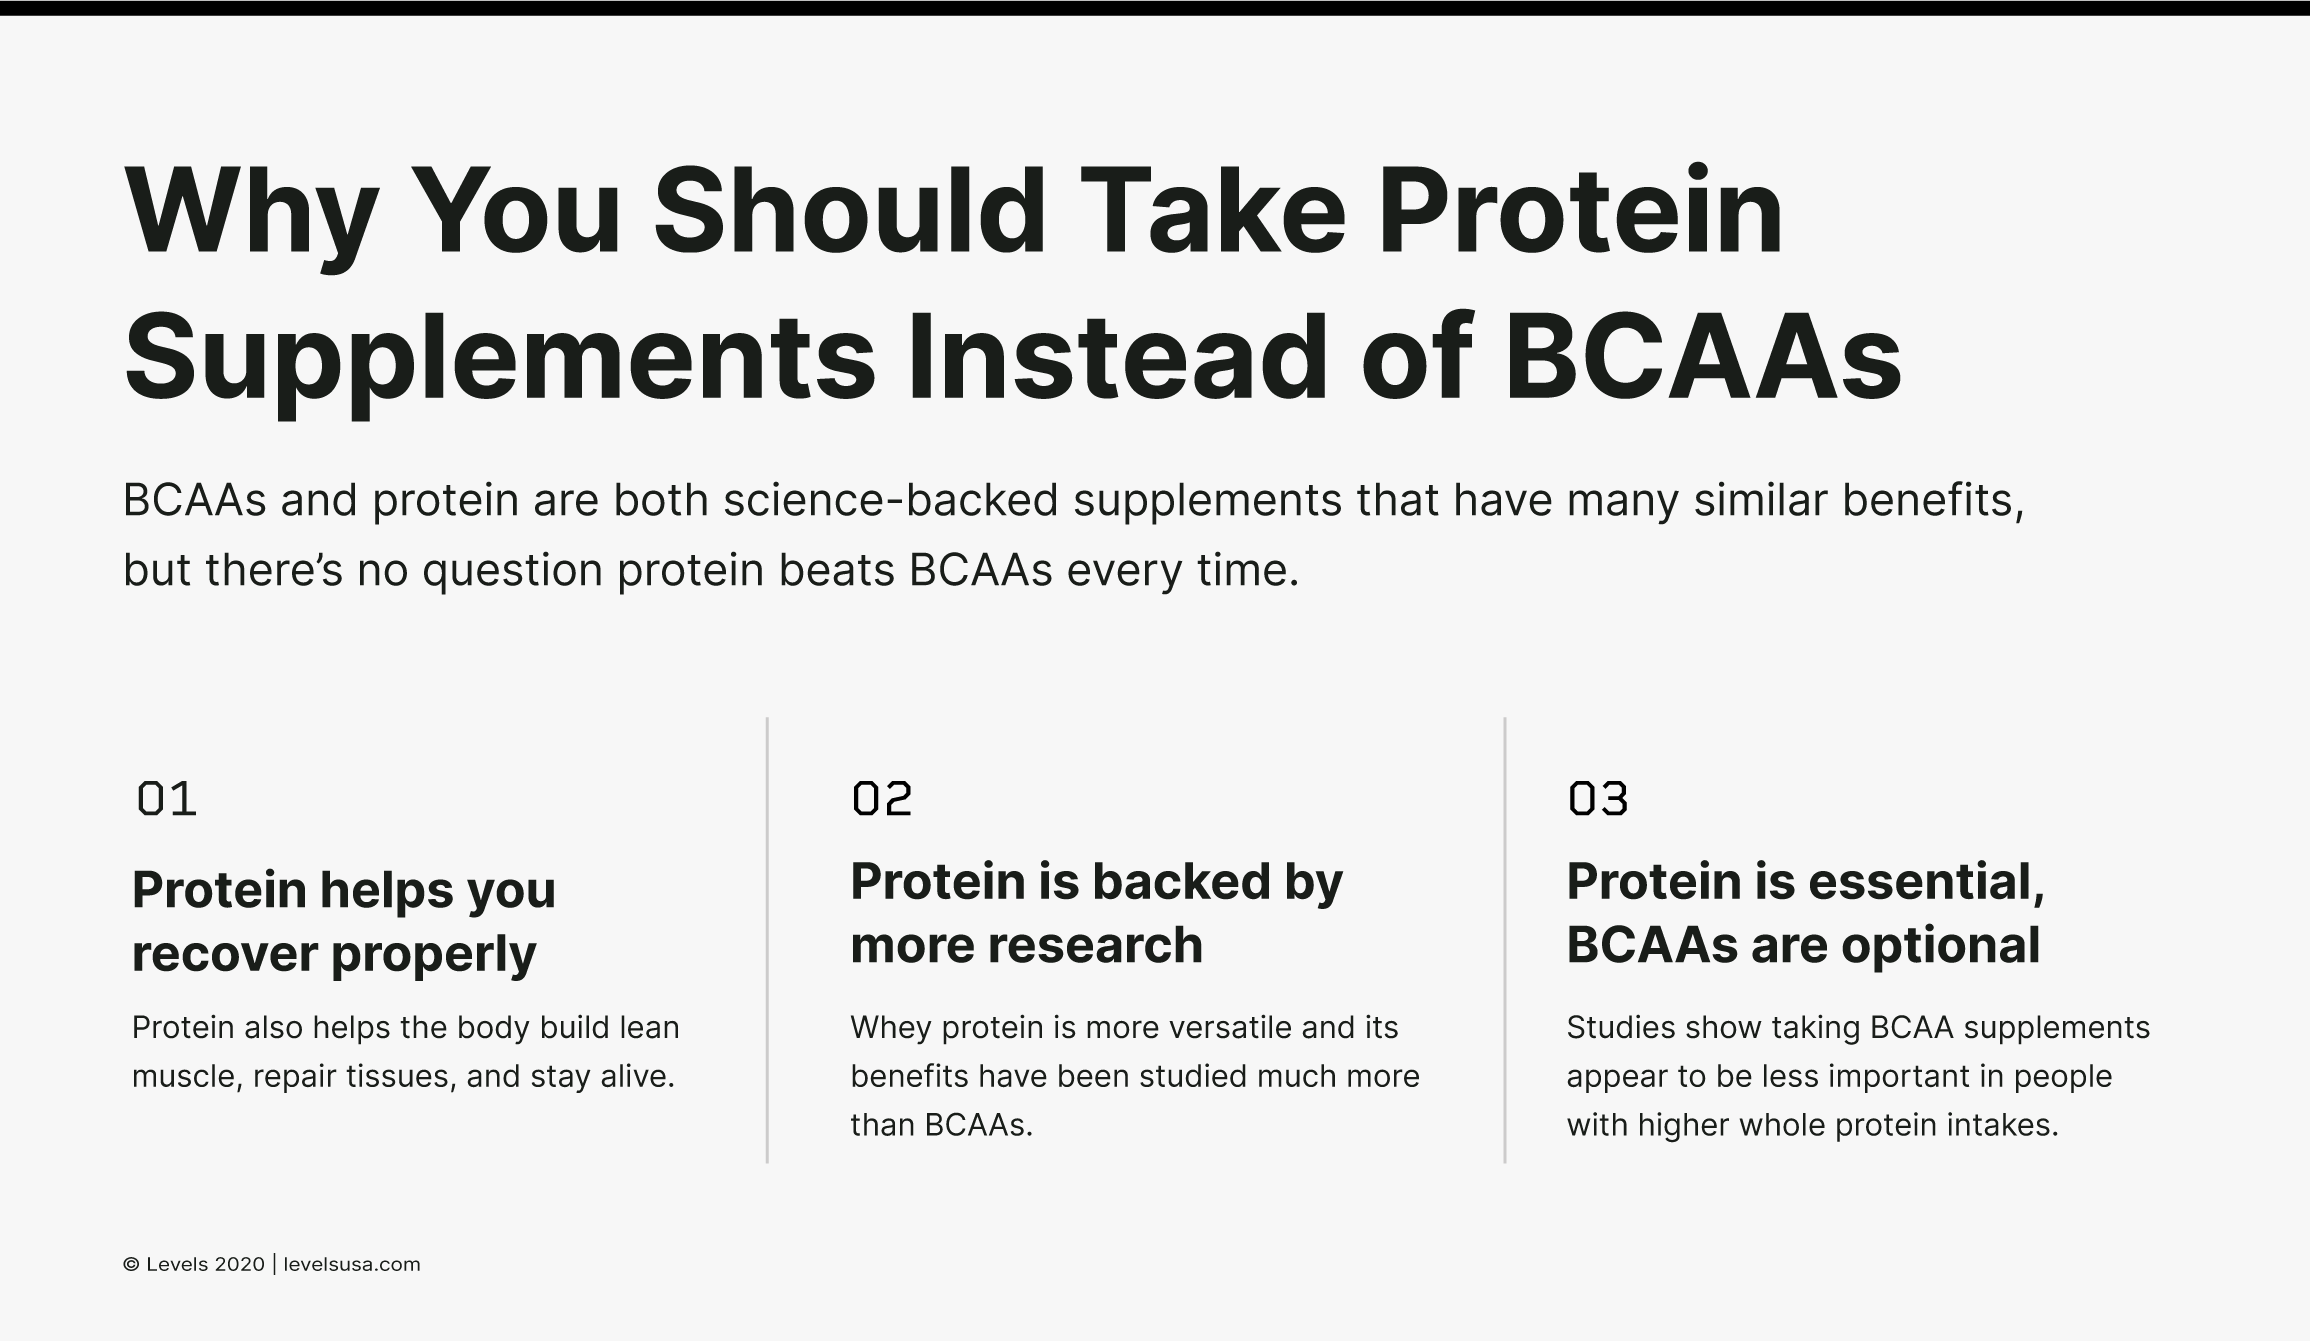 Why You Should Take Protein Supplements Instead of BCAAs - Infographic